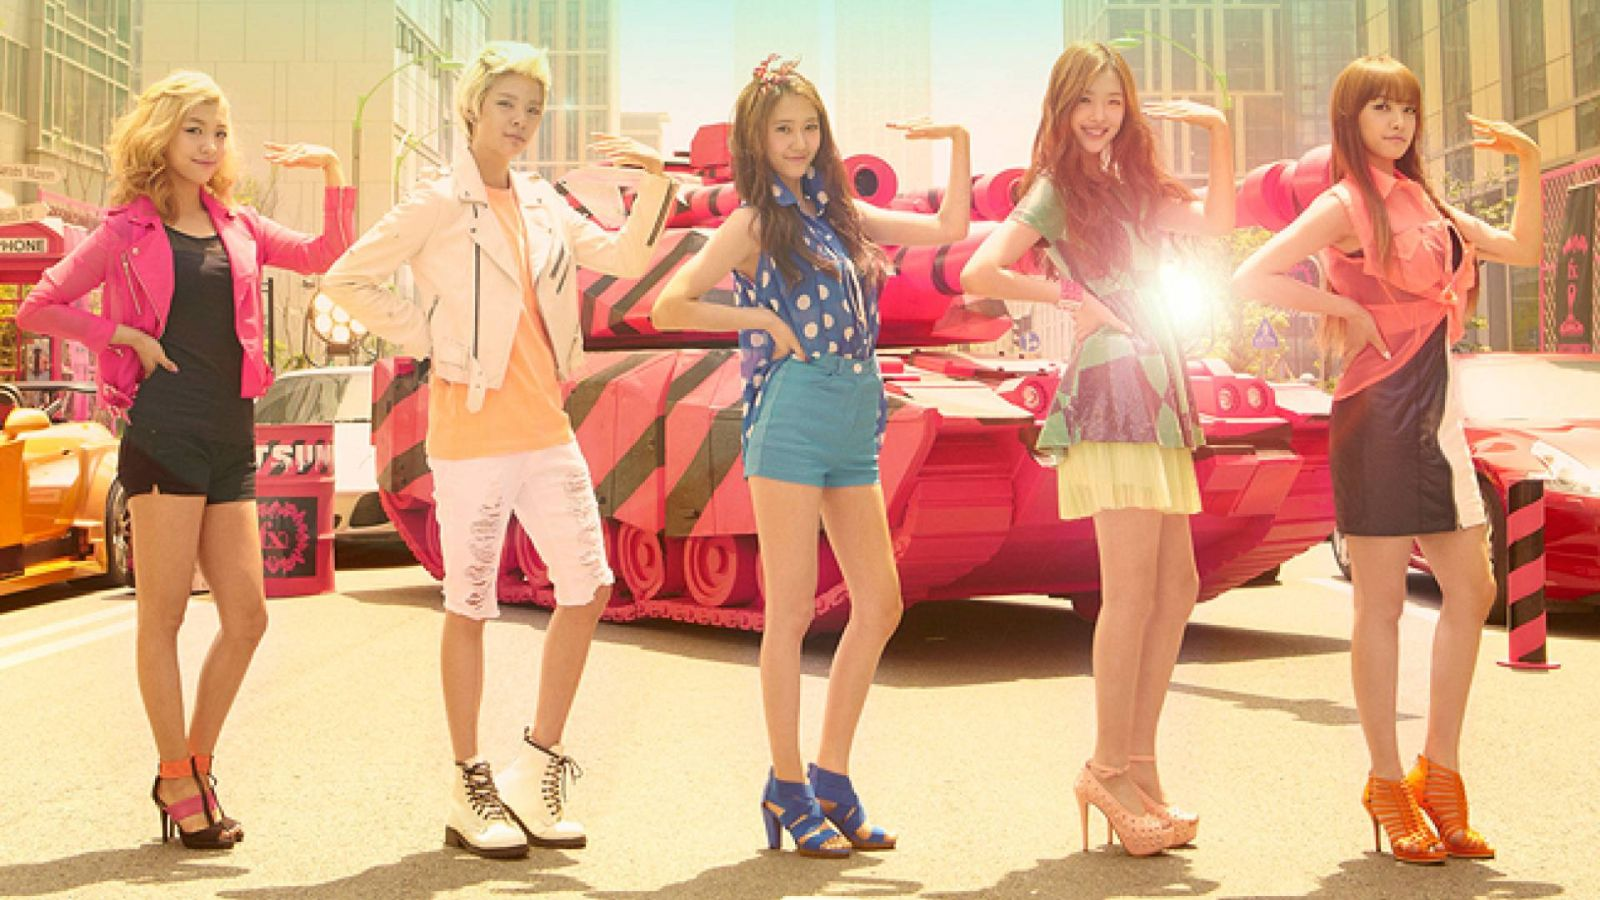 Un repackage album pour les f(x) © SM Entertainment